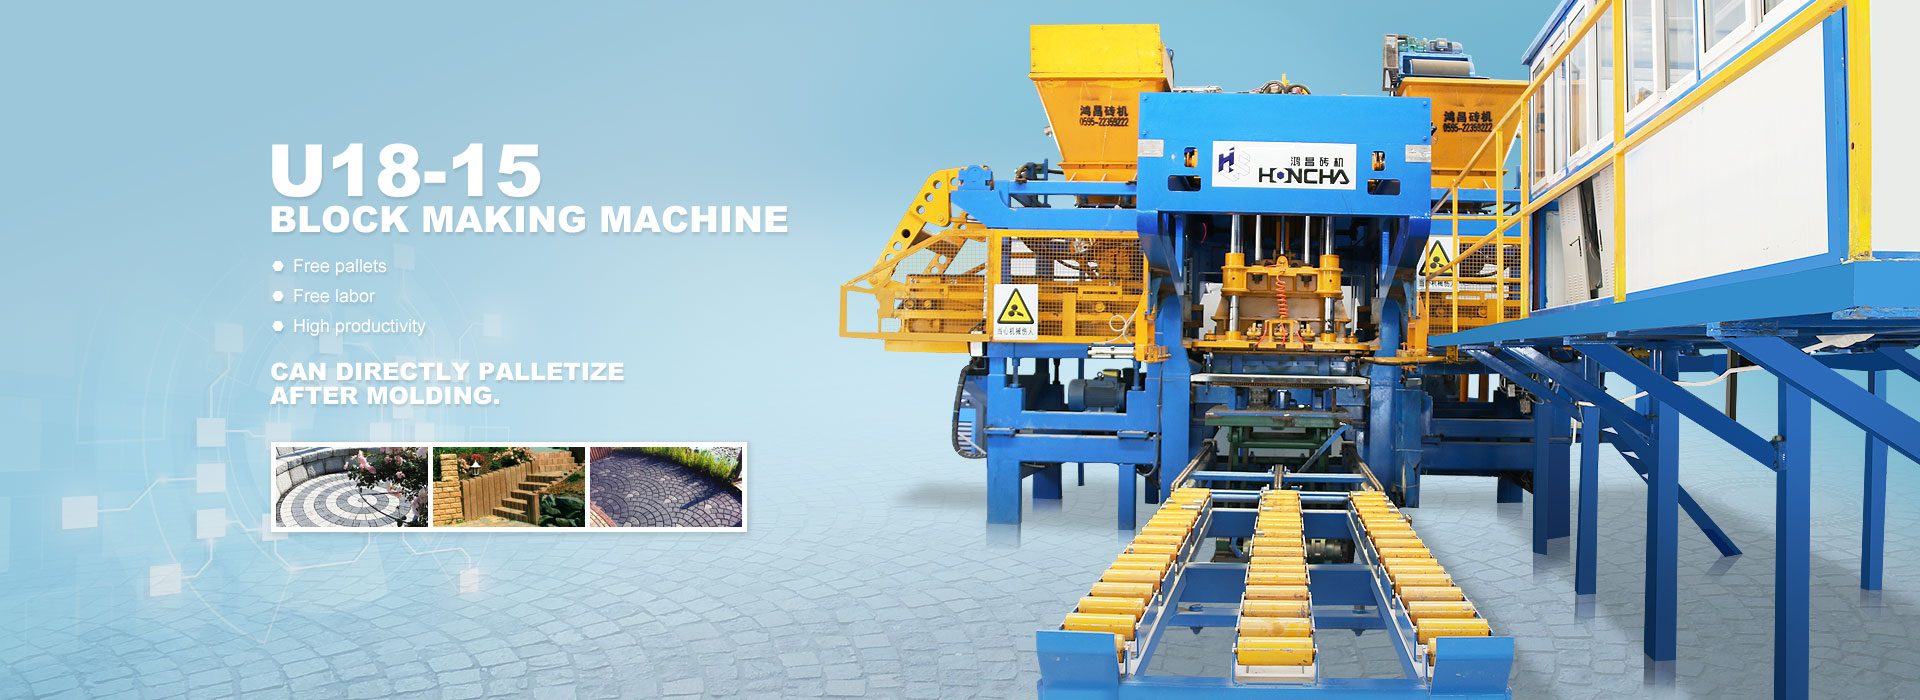 U18-15 Block Making Machine